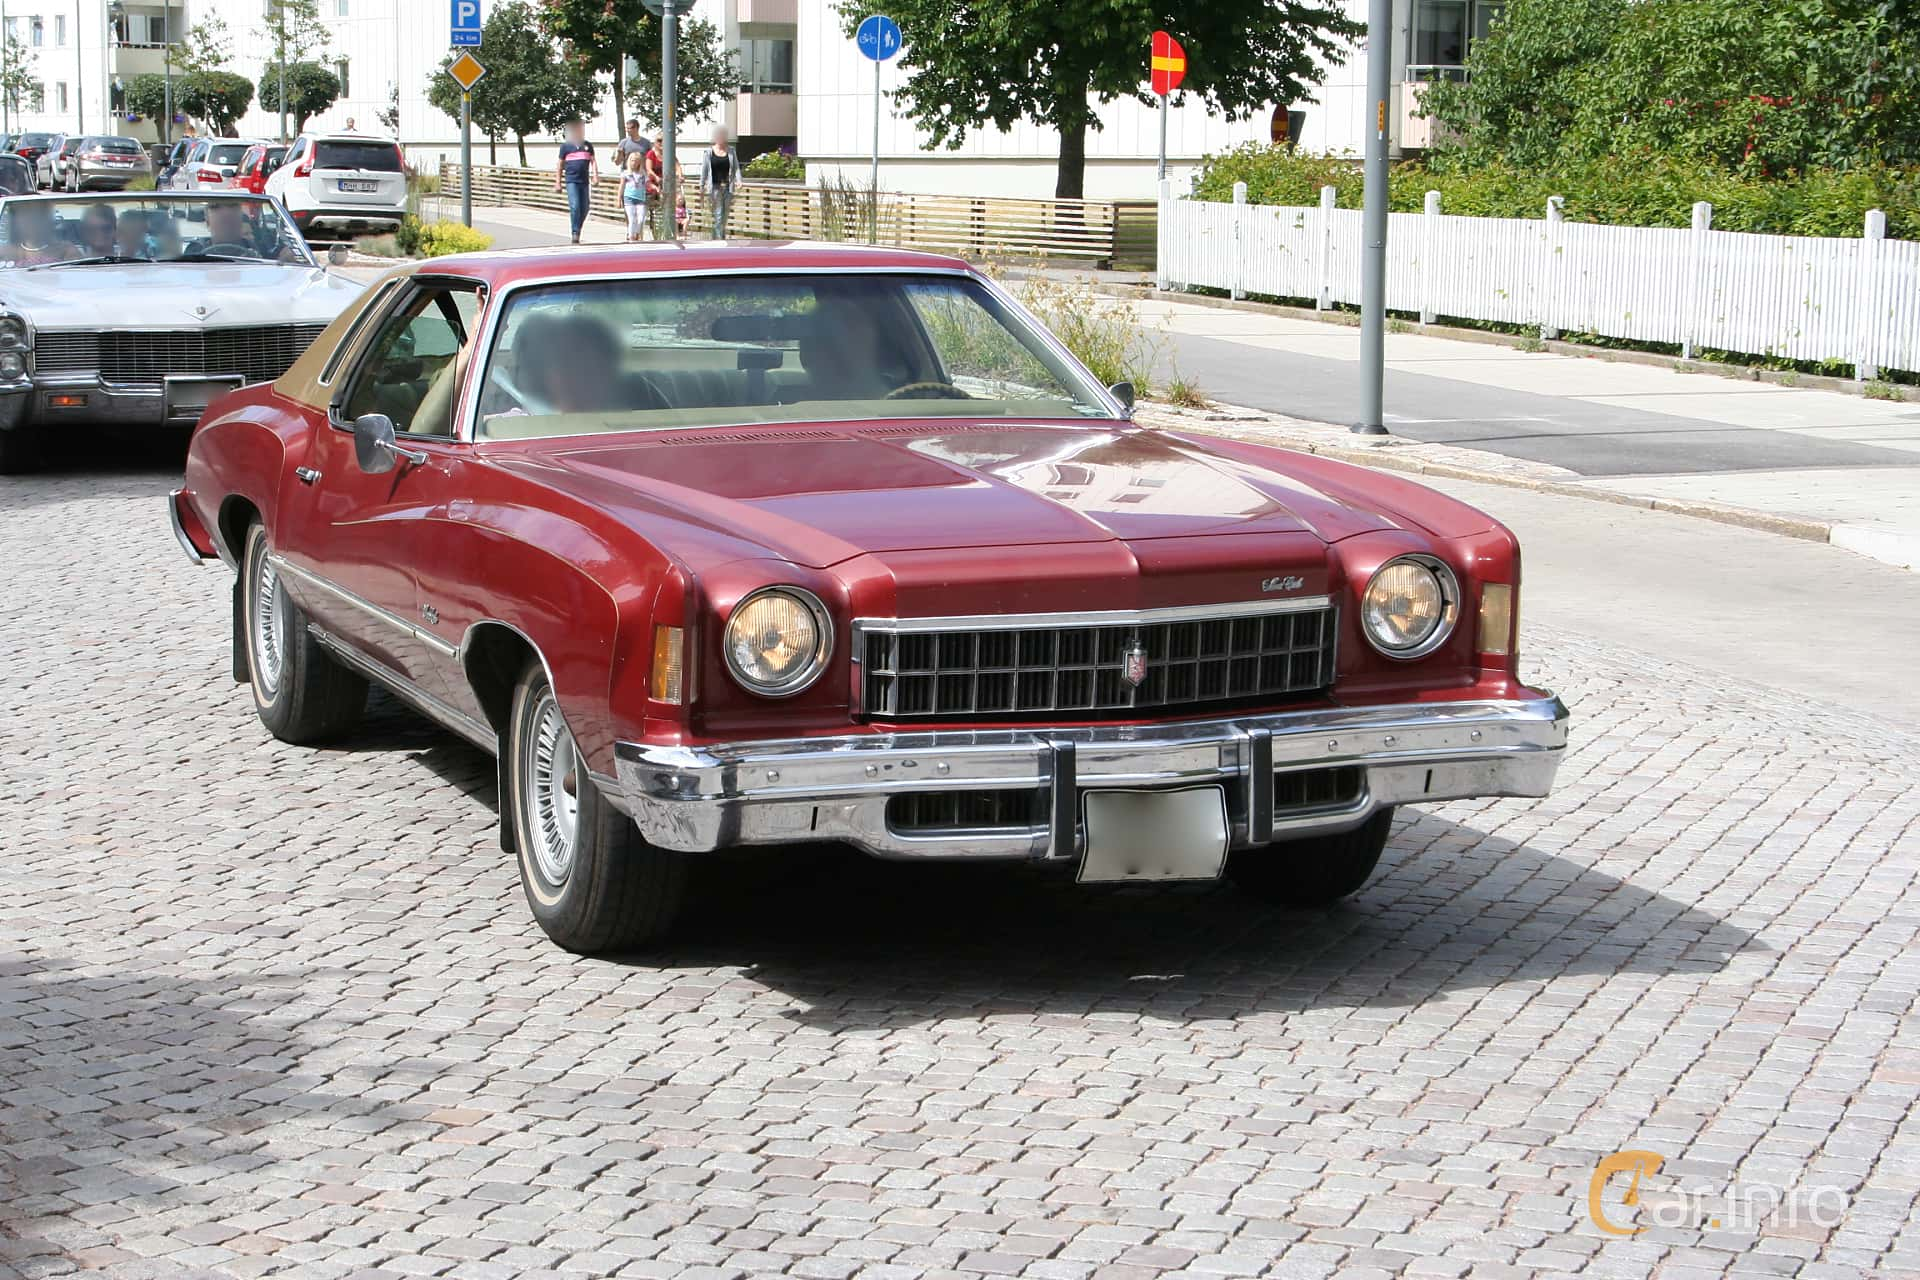 Front/Side Of Chevrolet Monte Carlo 5.7 V8 Hydra Matic, 177ps, 1975